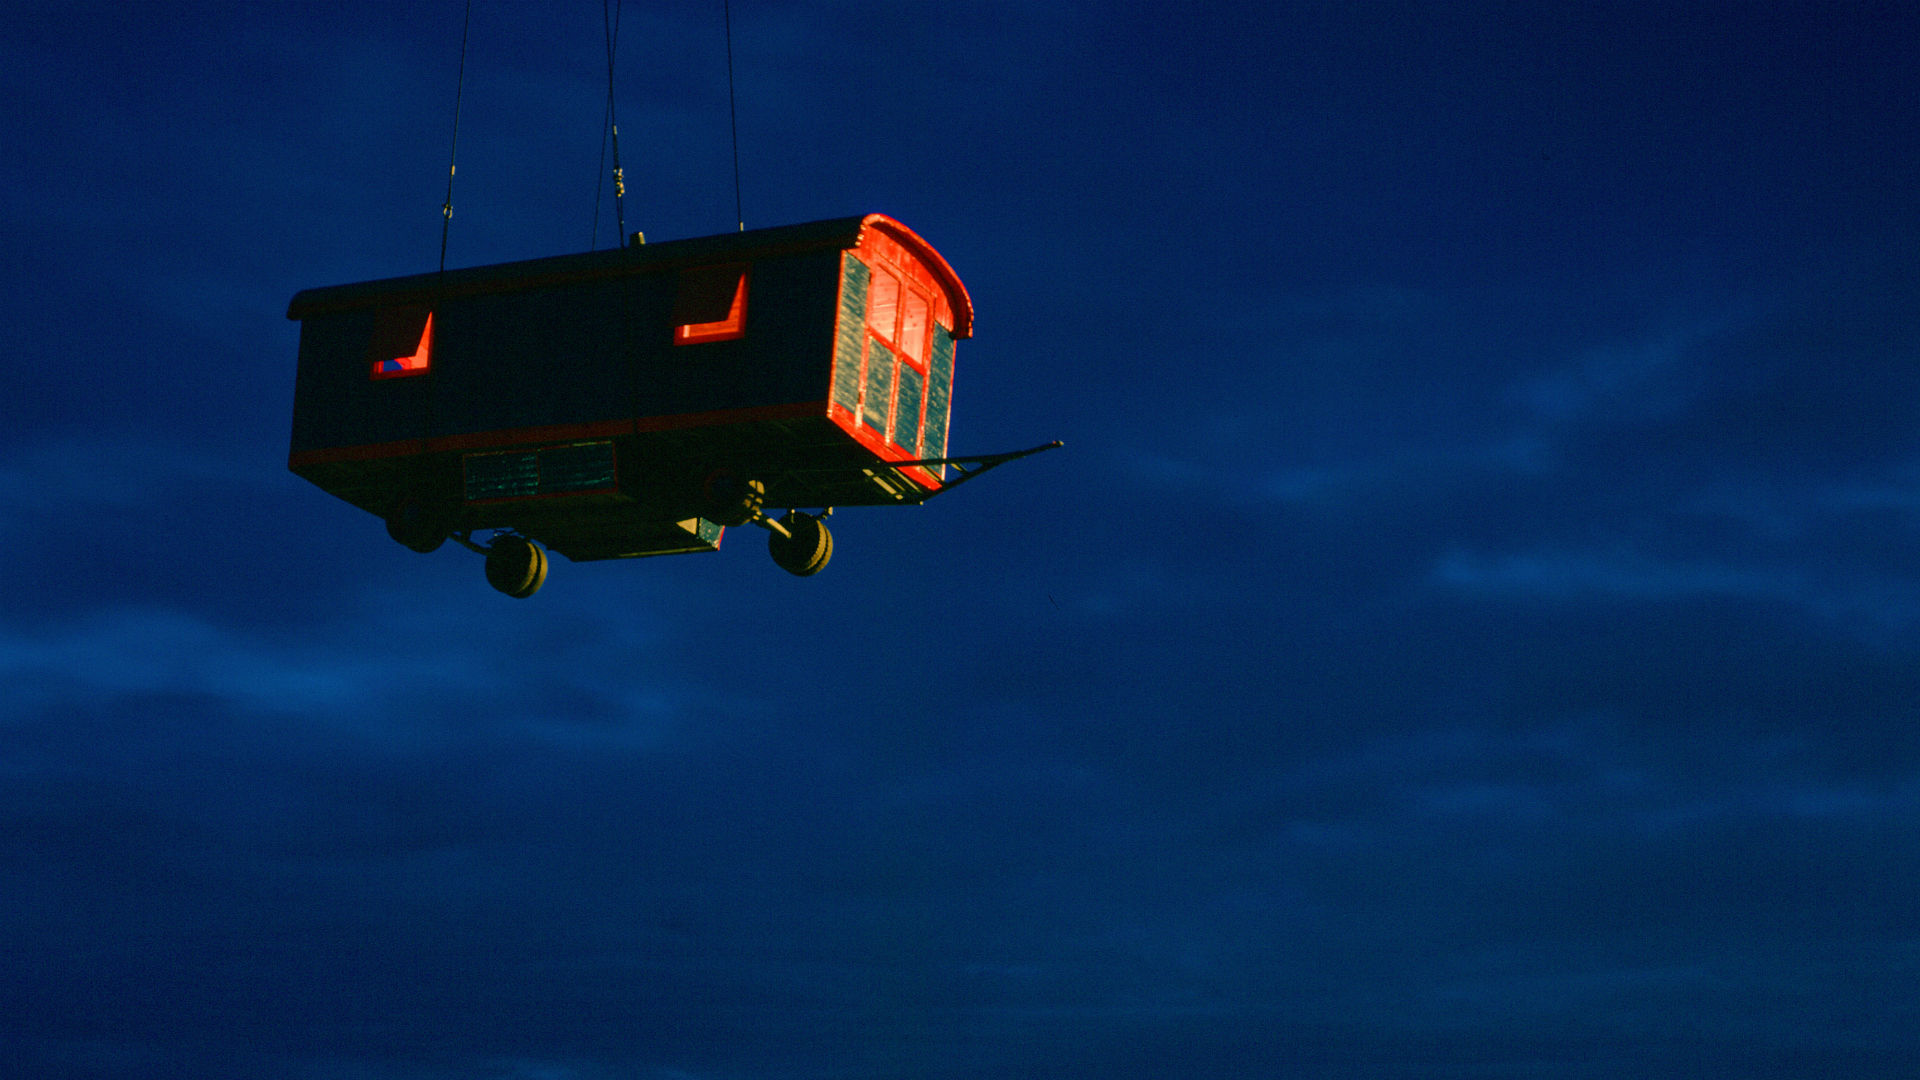 Lara Favaretto's red and blue caravan installation suspended by crane in the night sky